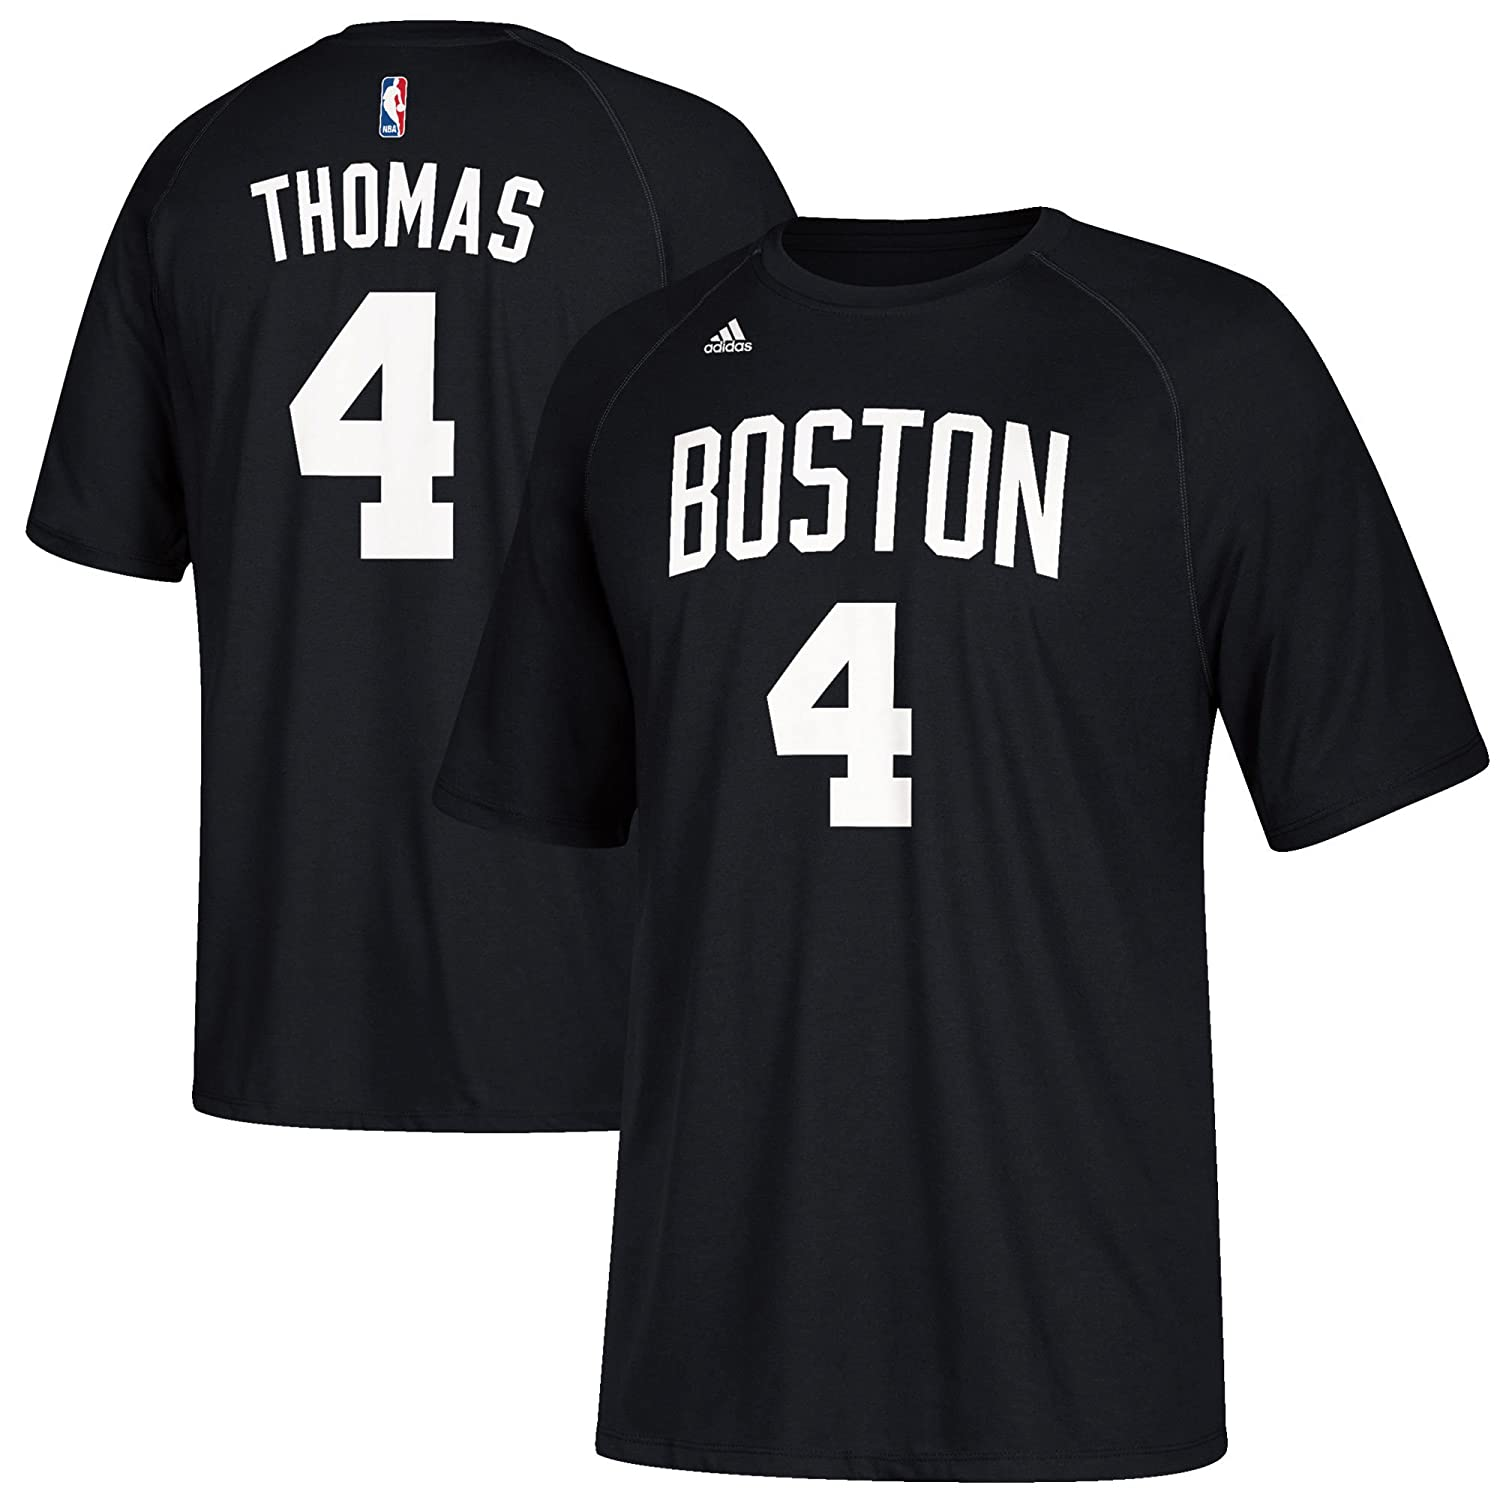 45764136c ... australia isaiah thomas boston celtics 4 black climalite youth  performance name and number t shirt 02f60